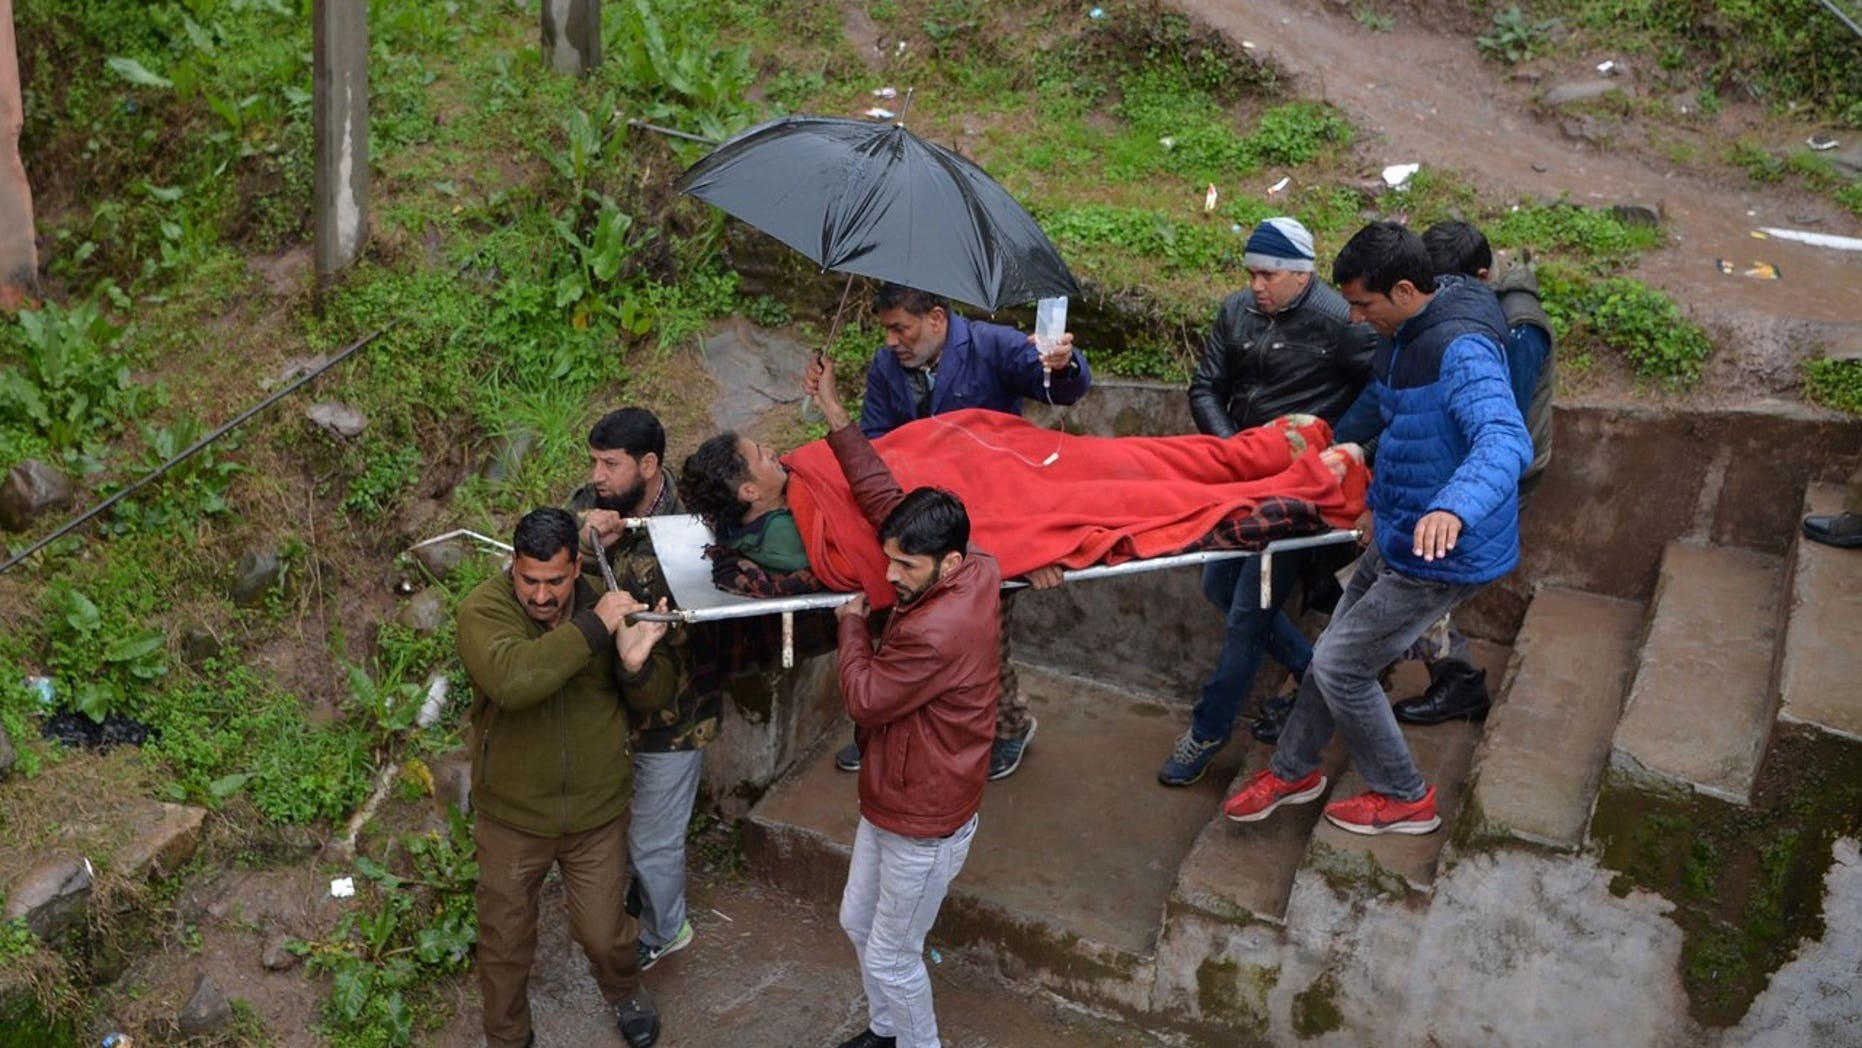 An injured man is carried on a stretcher at a hospital in the Indian Kashmir frontier town of Mendhar on March 2, 2019, after being wounded in his home when it was struck by a mortar shell that his family said was fired by Pakistan troops along the Line of Control (LoC) that divides Kashmir between India and Pakistan